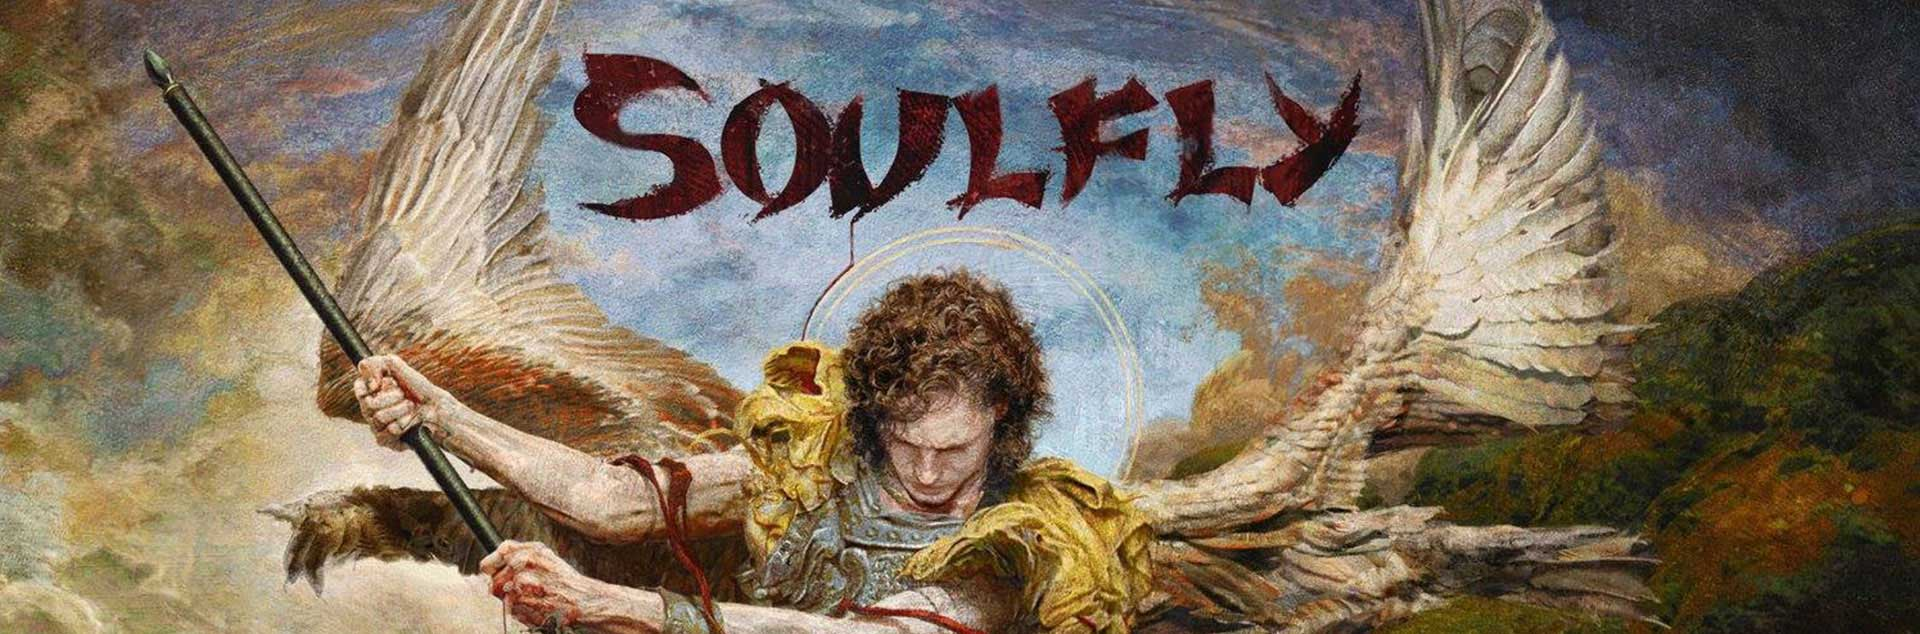 soulfly-slide-2017